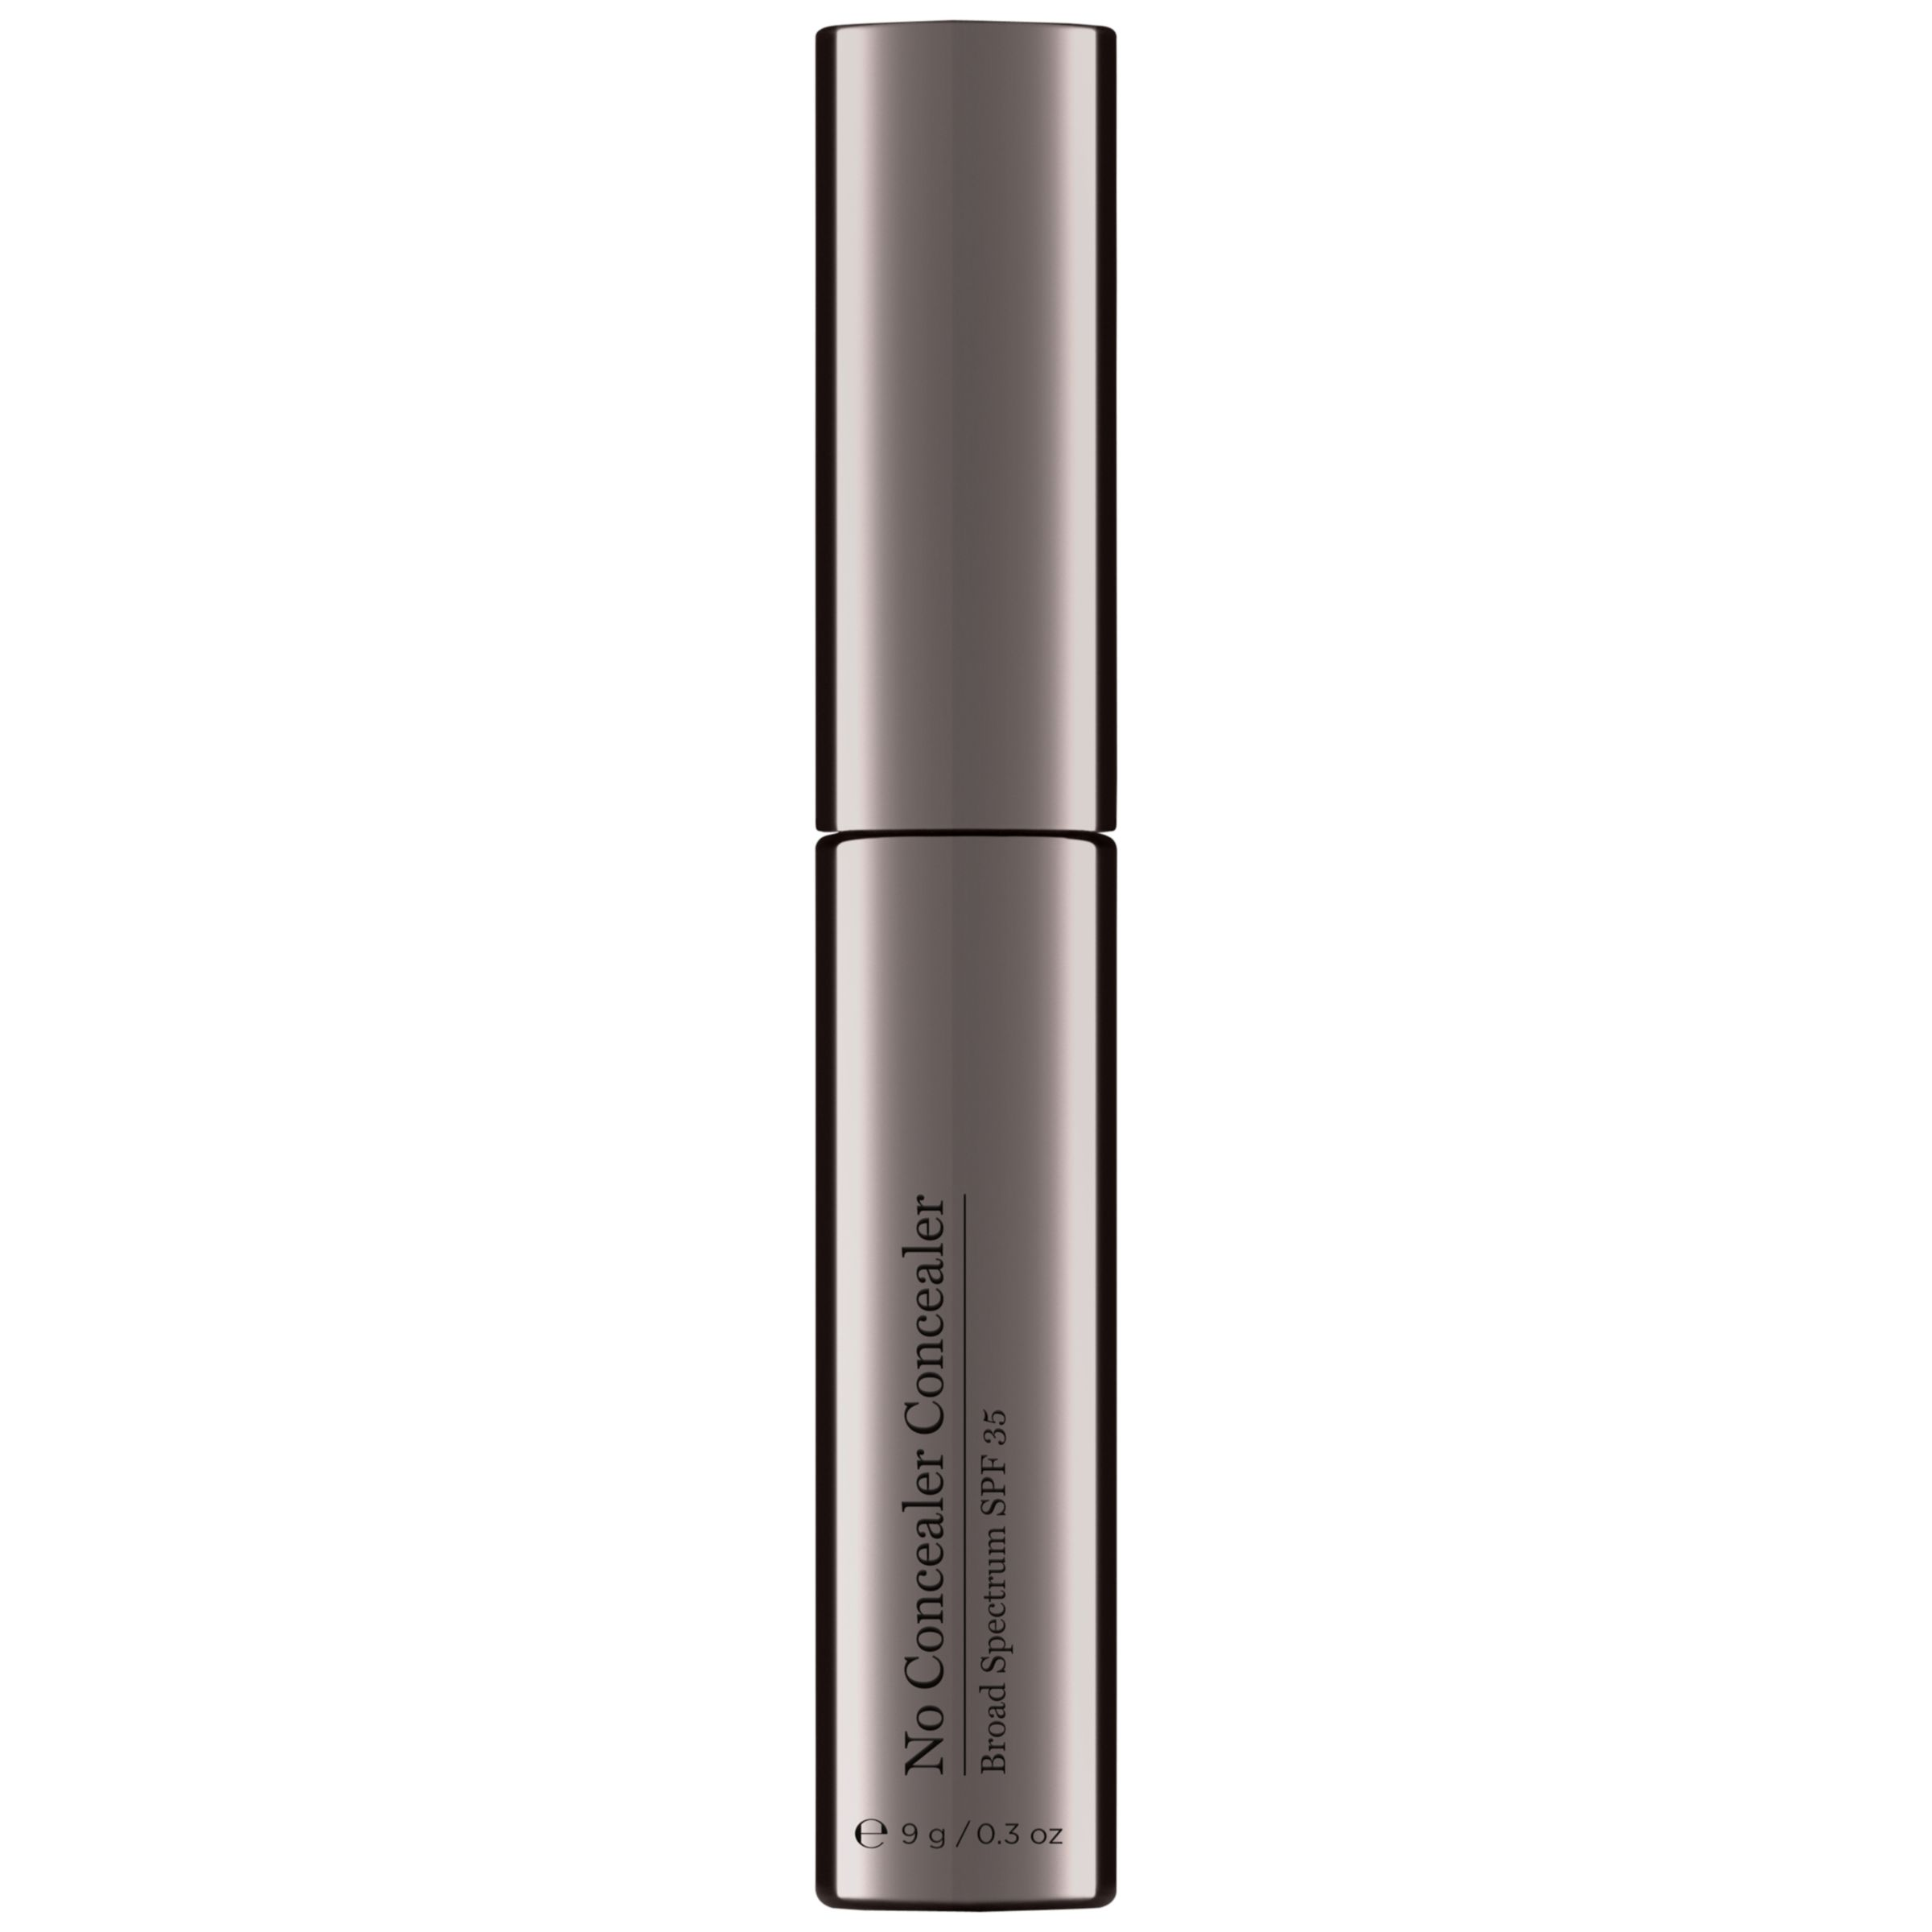 Perricone MD Perricone MD No Concealer Concealer, 9g